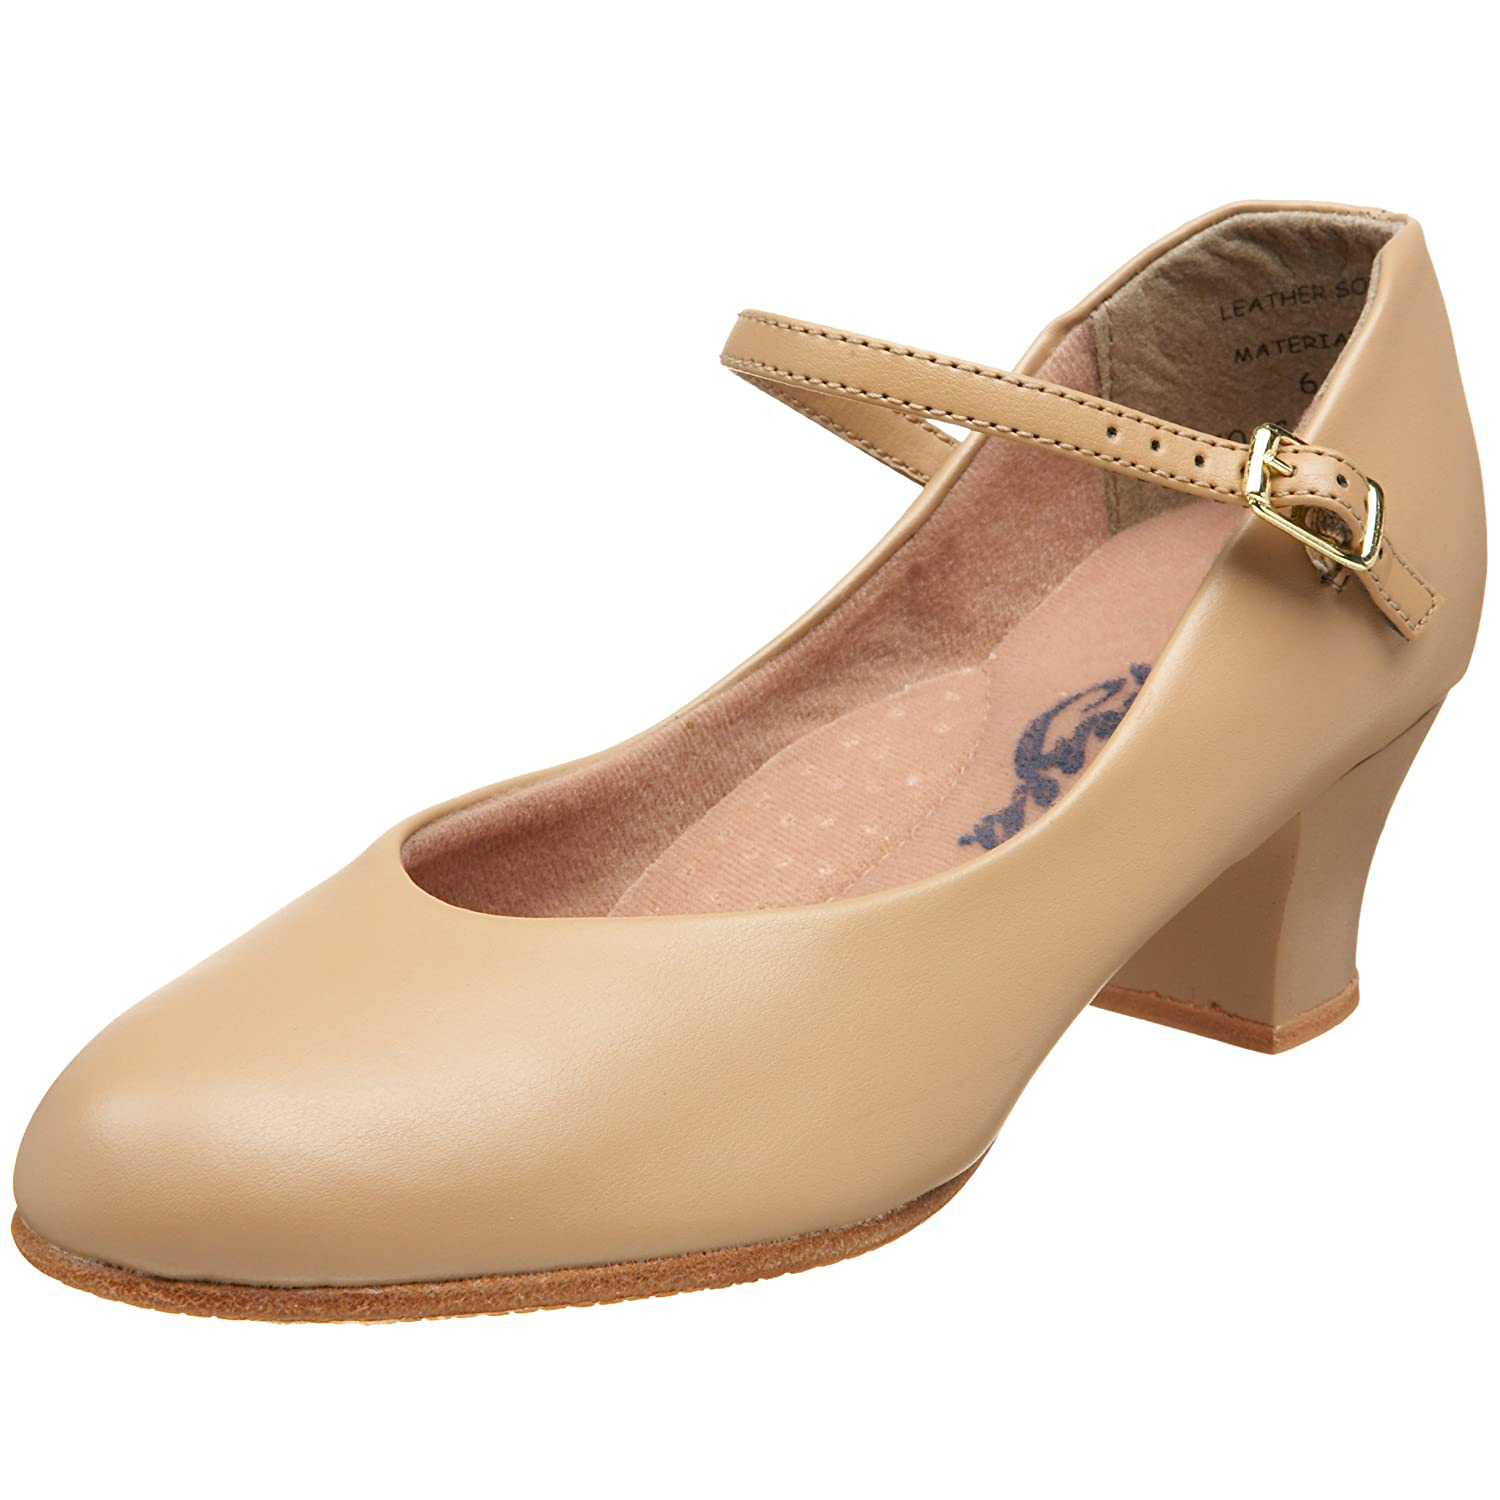 Capezio 550 Tan Junior Footlight B002CO3F8G 4.5 B(M) US|Caramel